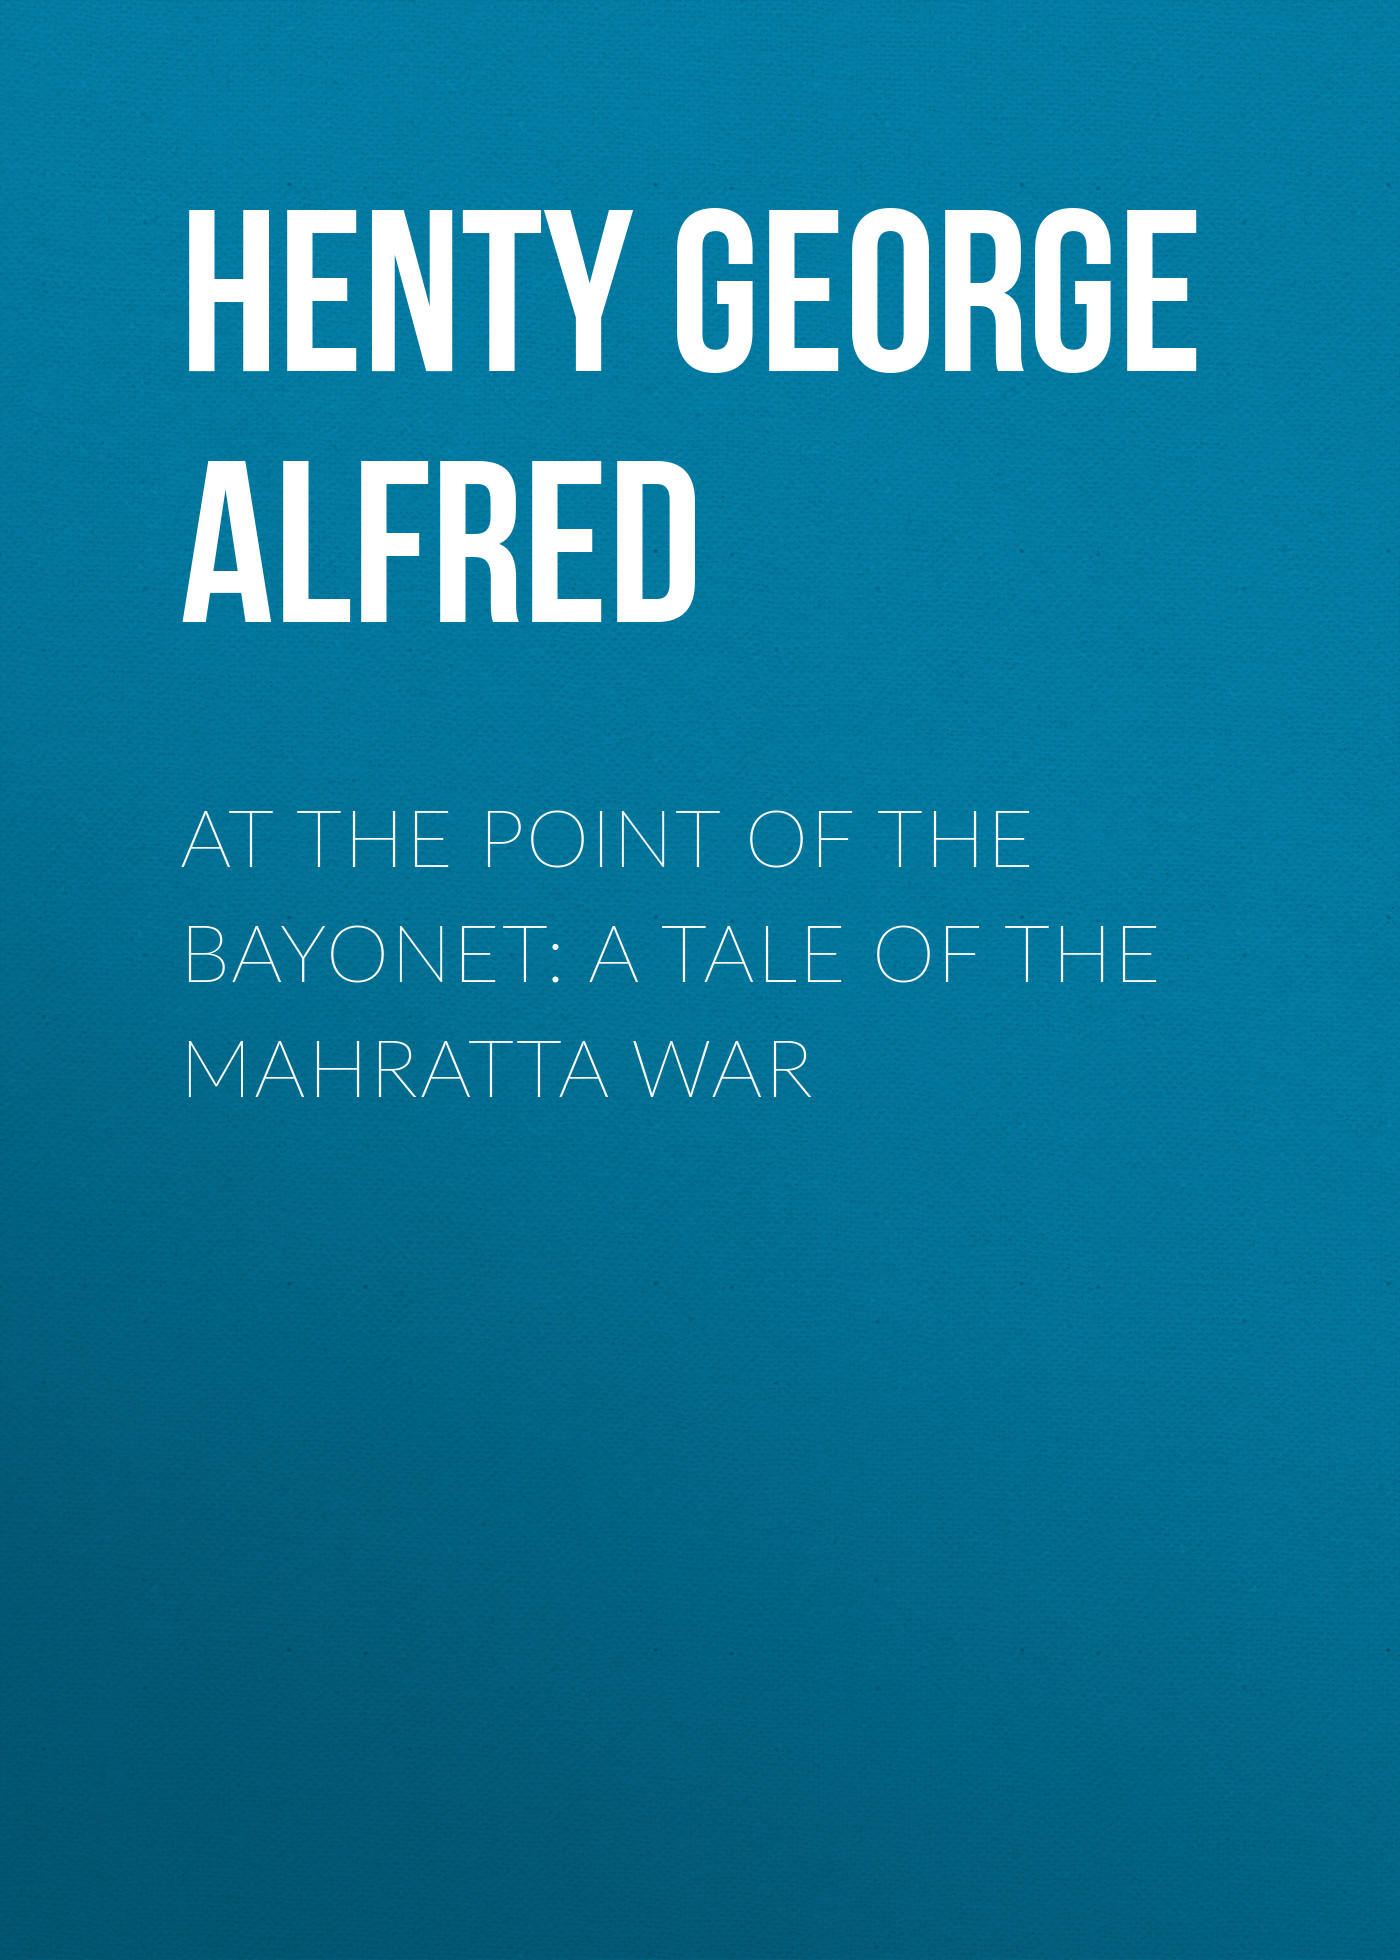 Henty George Alfred At the Point of the Bayonet: A Tale of the Mahratta War m weis t hickman the dragon at war